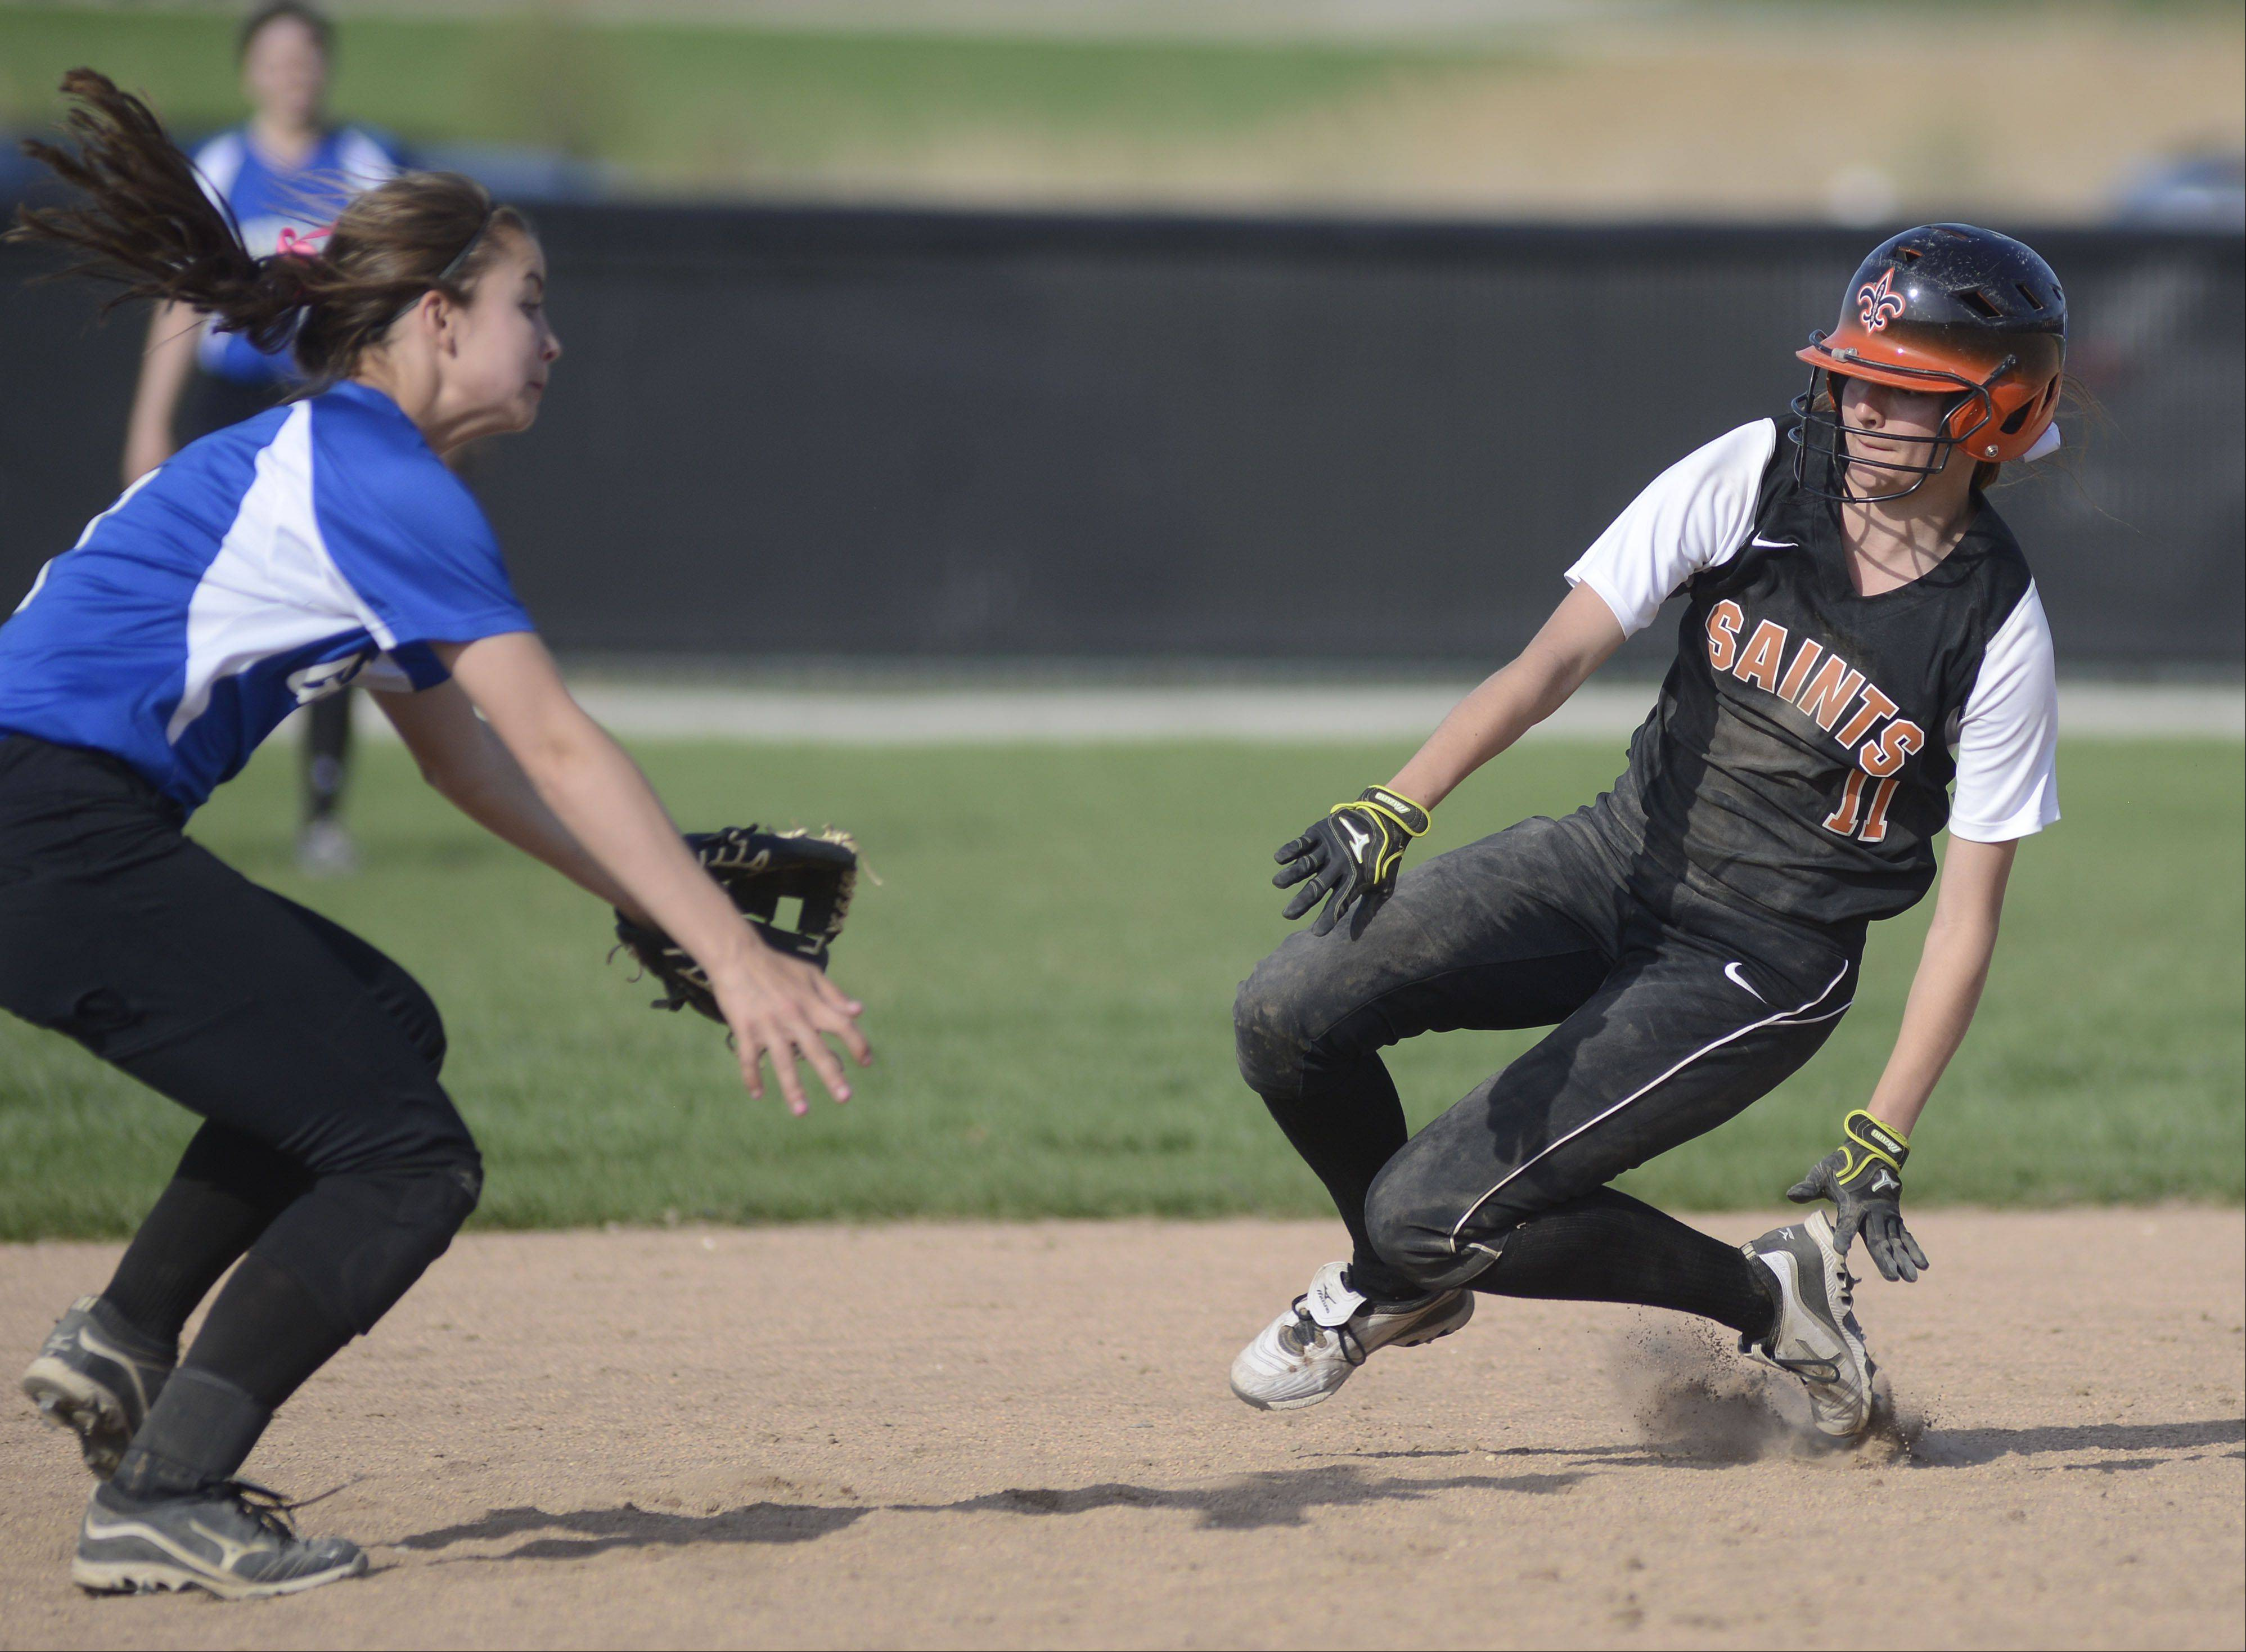 St. Charles East's Tess Hupe is safe on second base before the ball just misses the glove of Geneva's Anna Geary in the third inning on Tuesday, April 30.